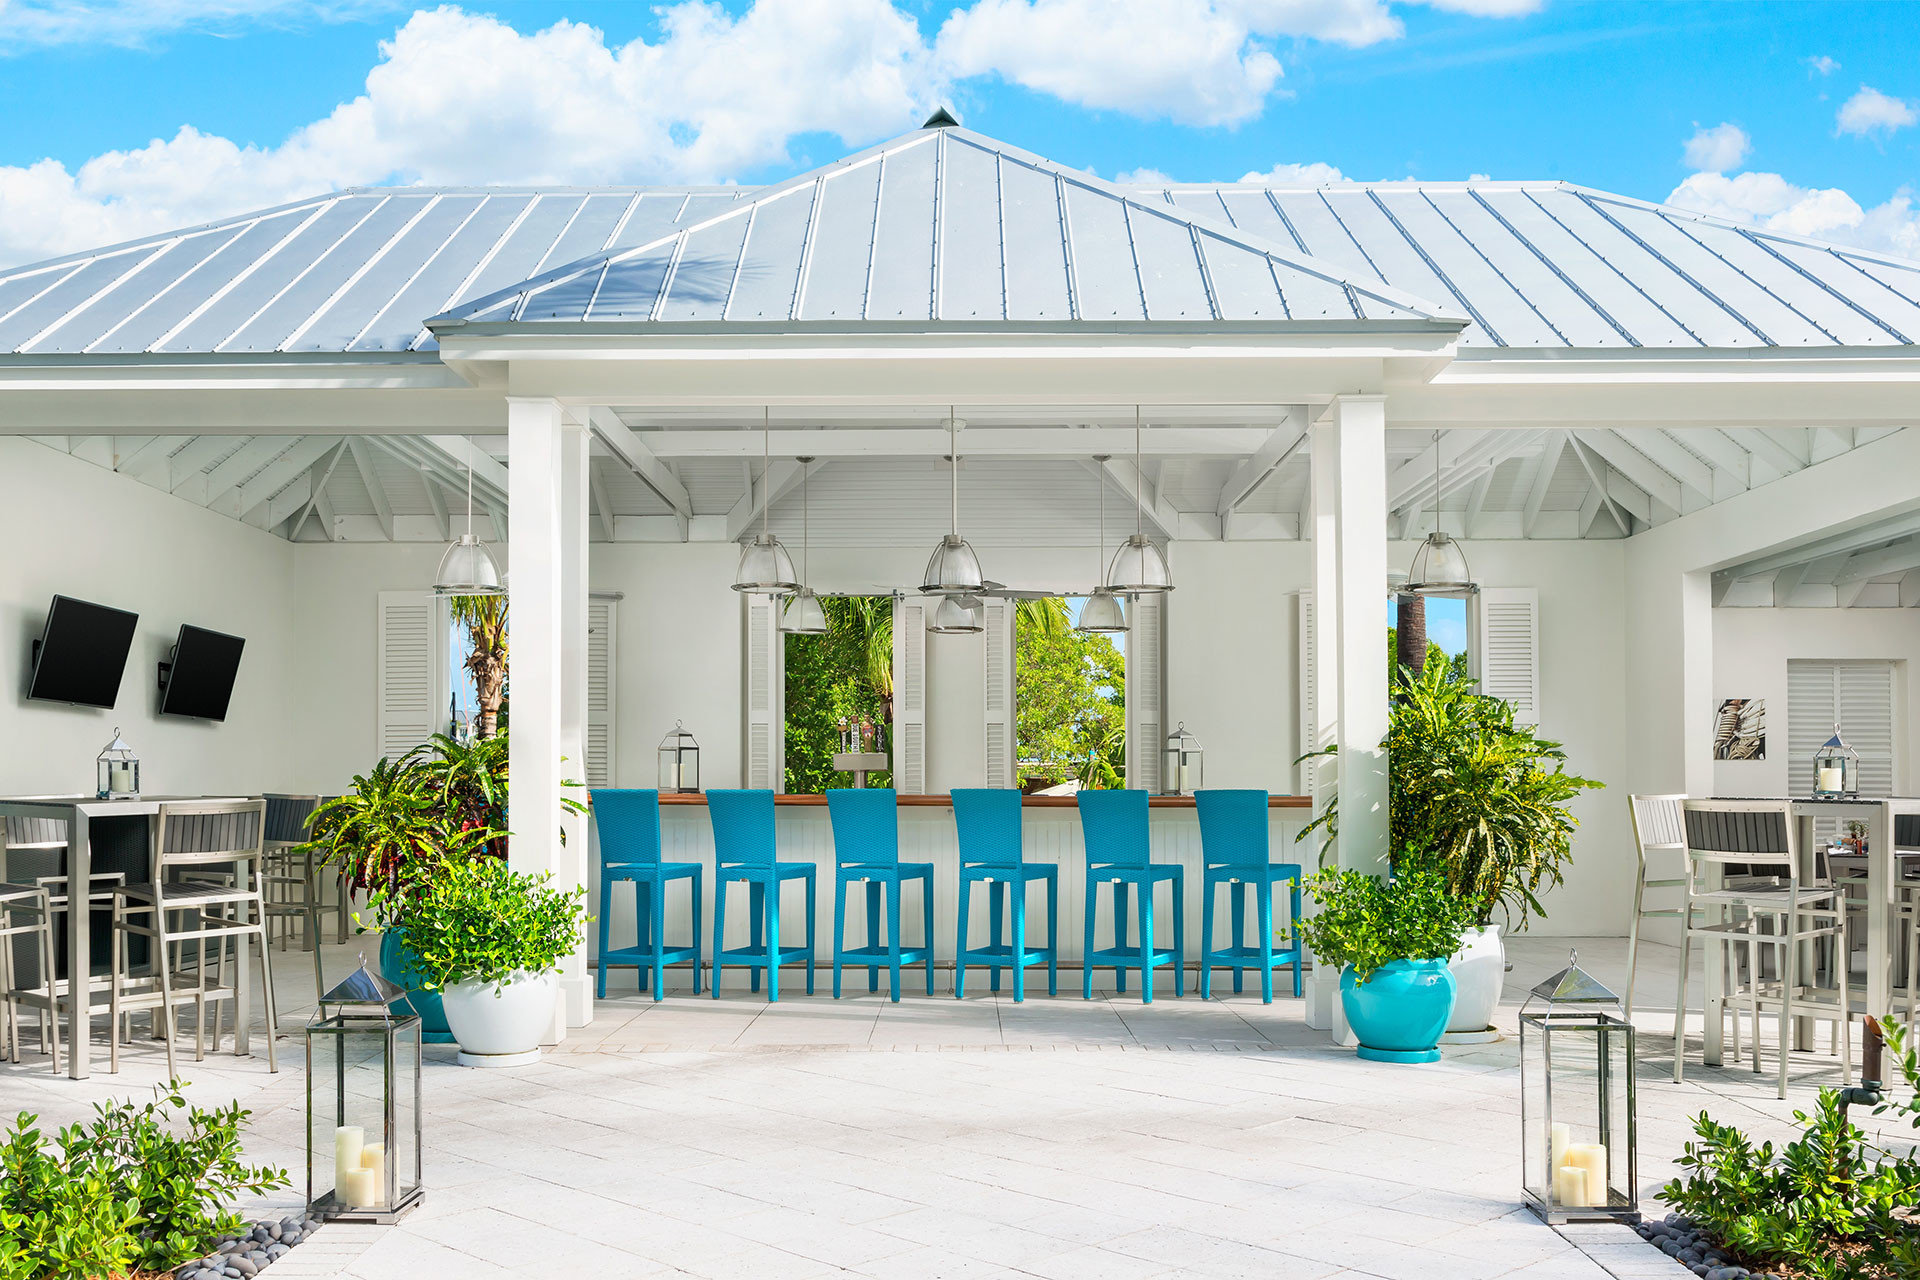 Florida Hotels property estate structure real estate house home outdoor structure roof Villa facade cottage gazebo